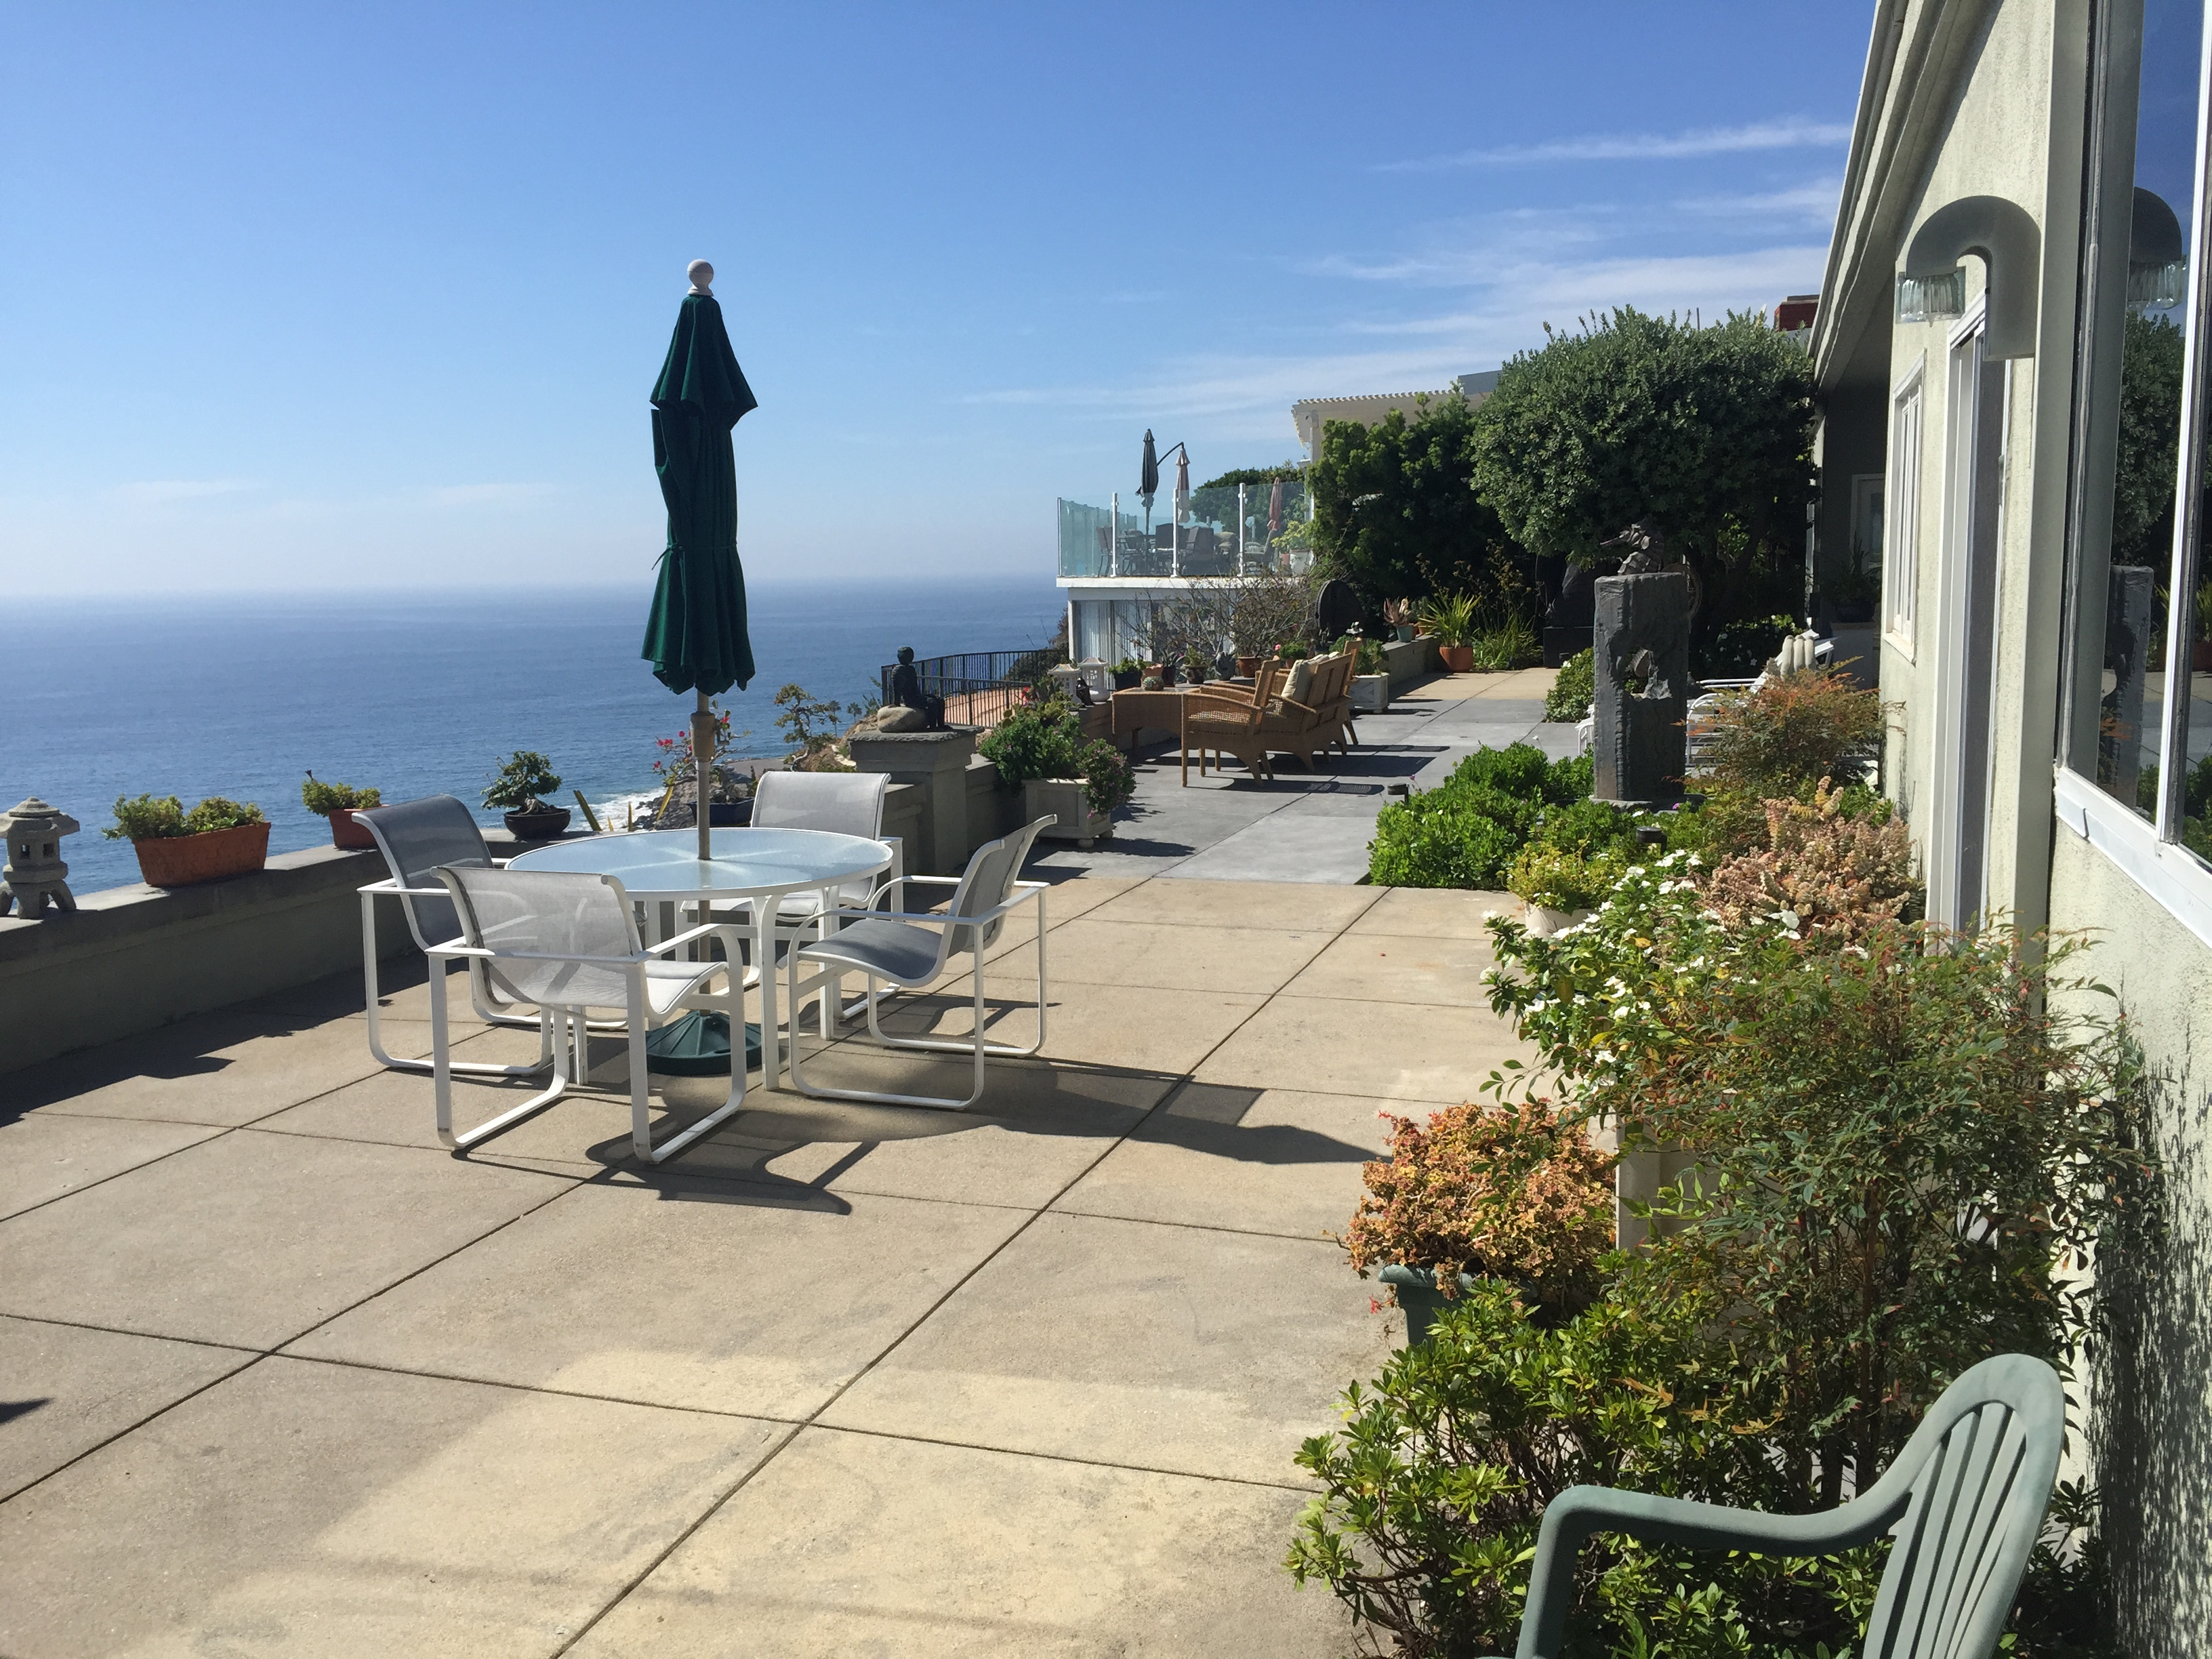 Mobile Screen Service and Repair in Malibu, CA. Custom Made Patio Sliding Doors installed on exterior Malibu